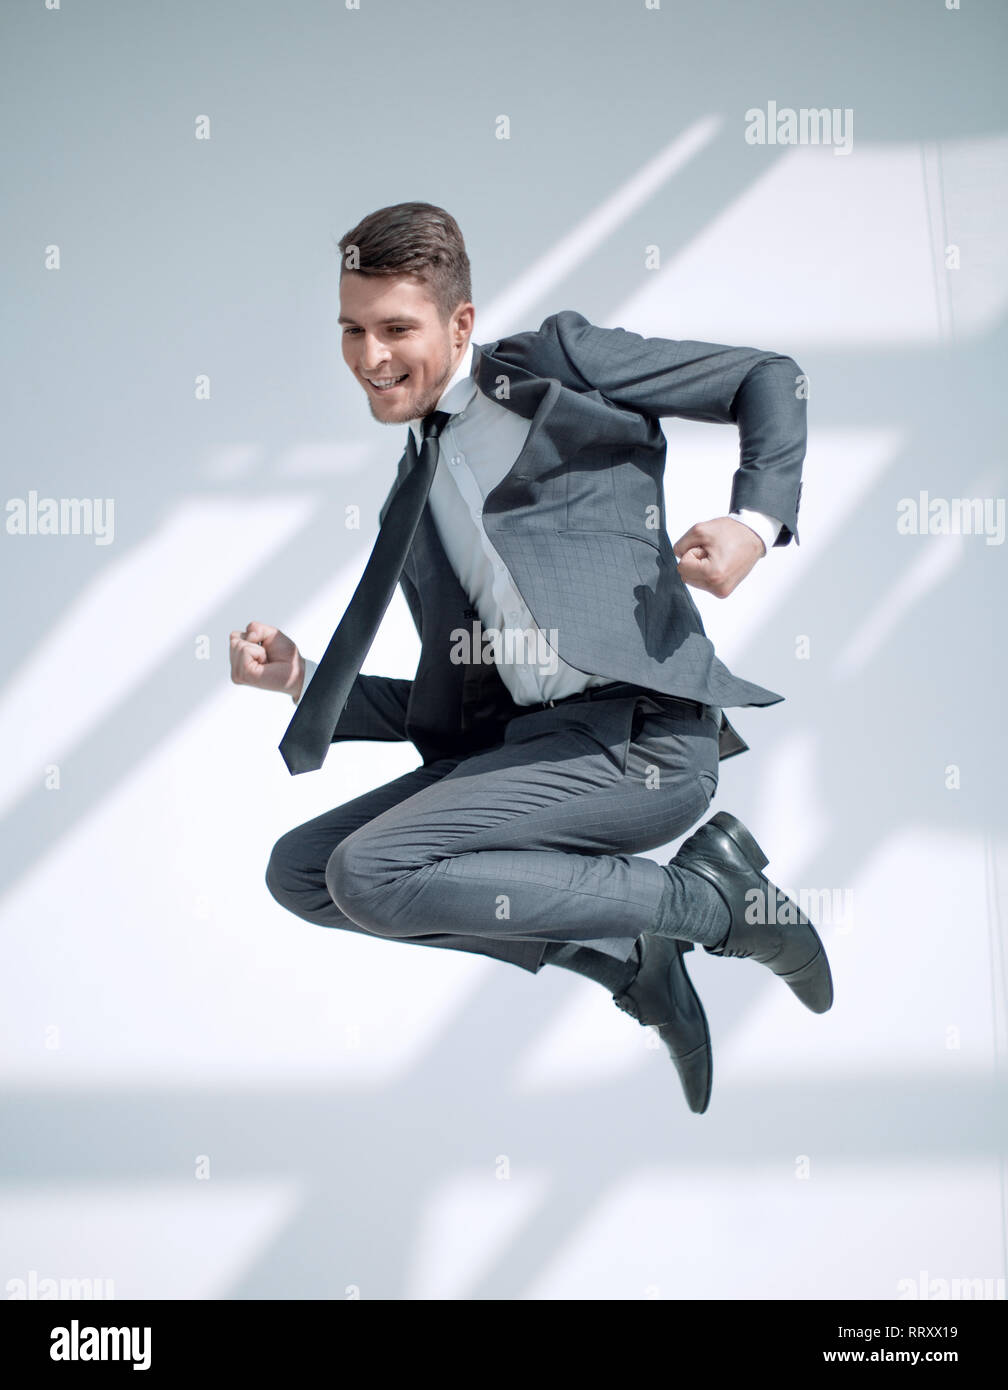 Full-length jump of a young man jumping with an open mouth, isolated on a white background. - Stock Image